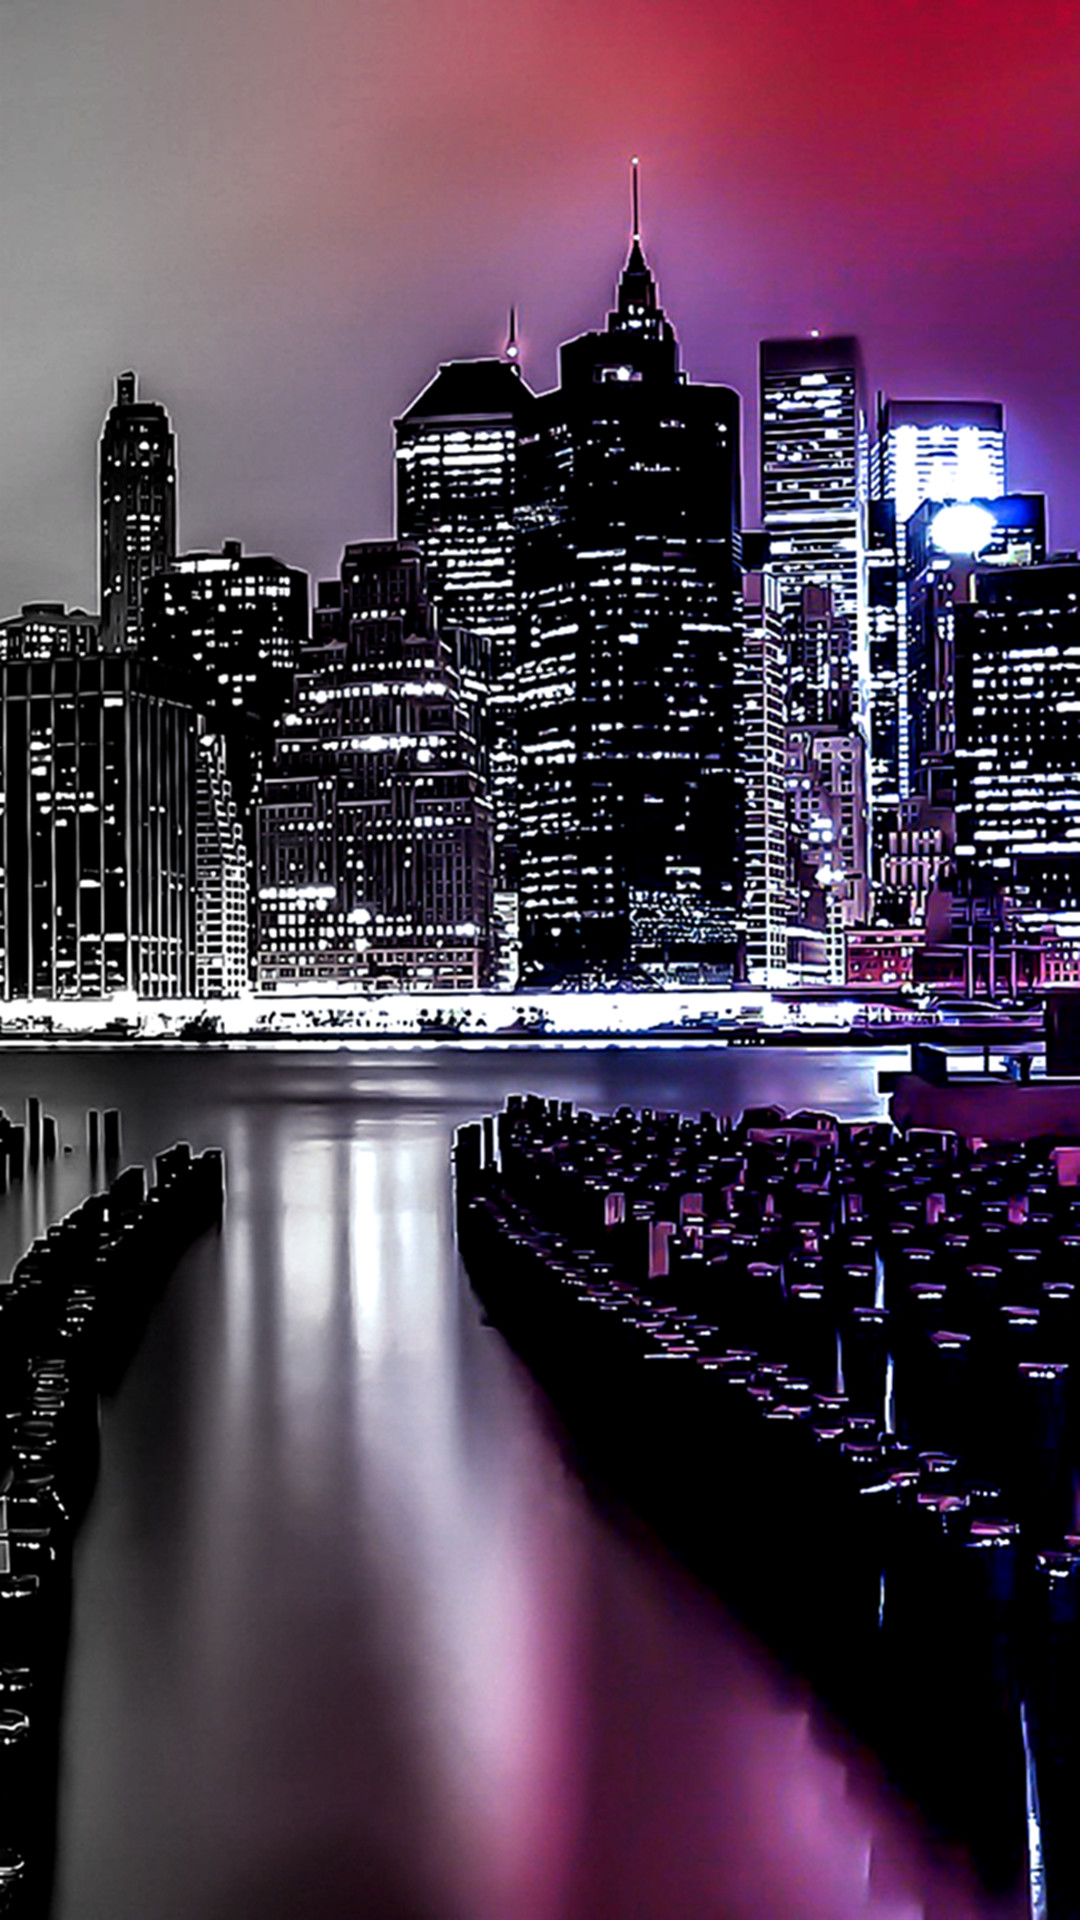 City Lights IPhone Wallpaper (77+ Images